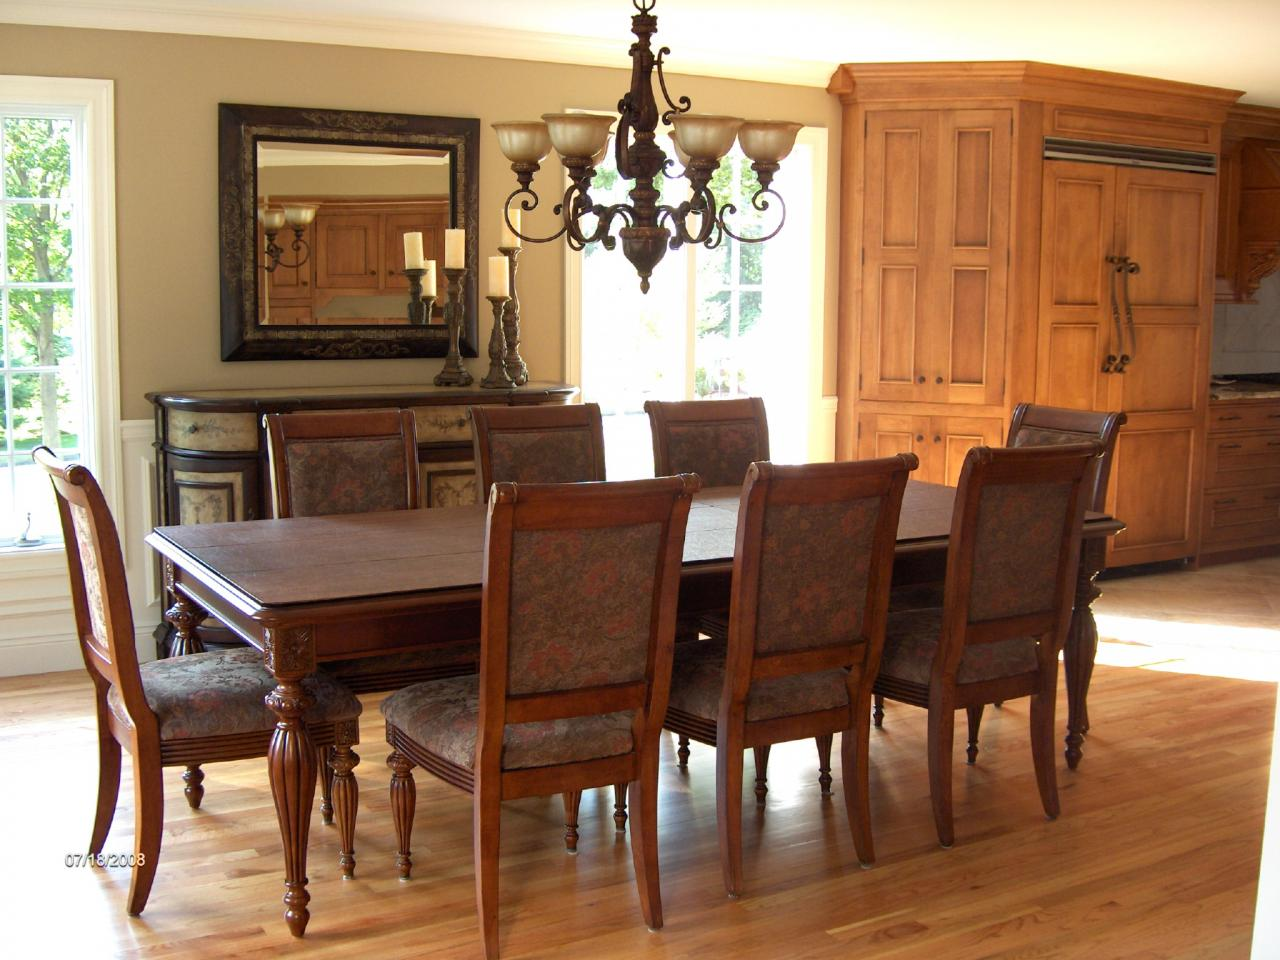 Elegant dining room sets home designer - Images of dining room sets ...